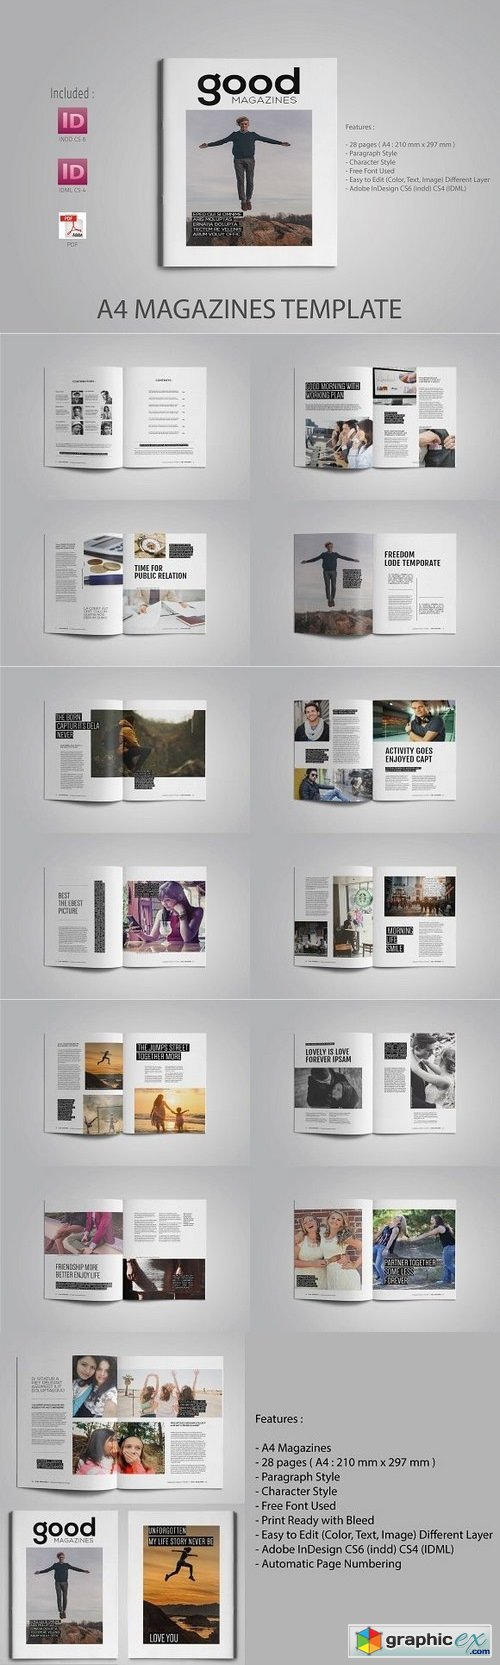 Fantastic Magazine Template Publisher Frieze - Examples Professional ...